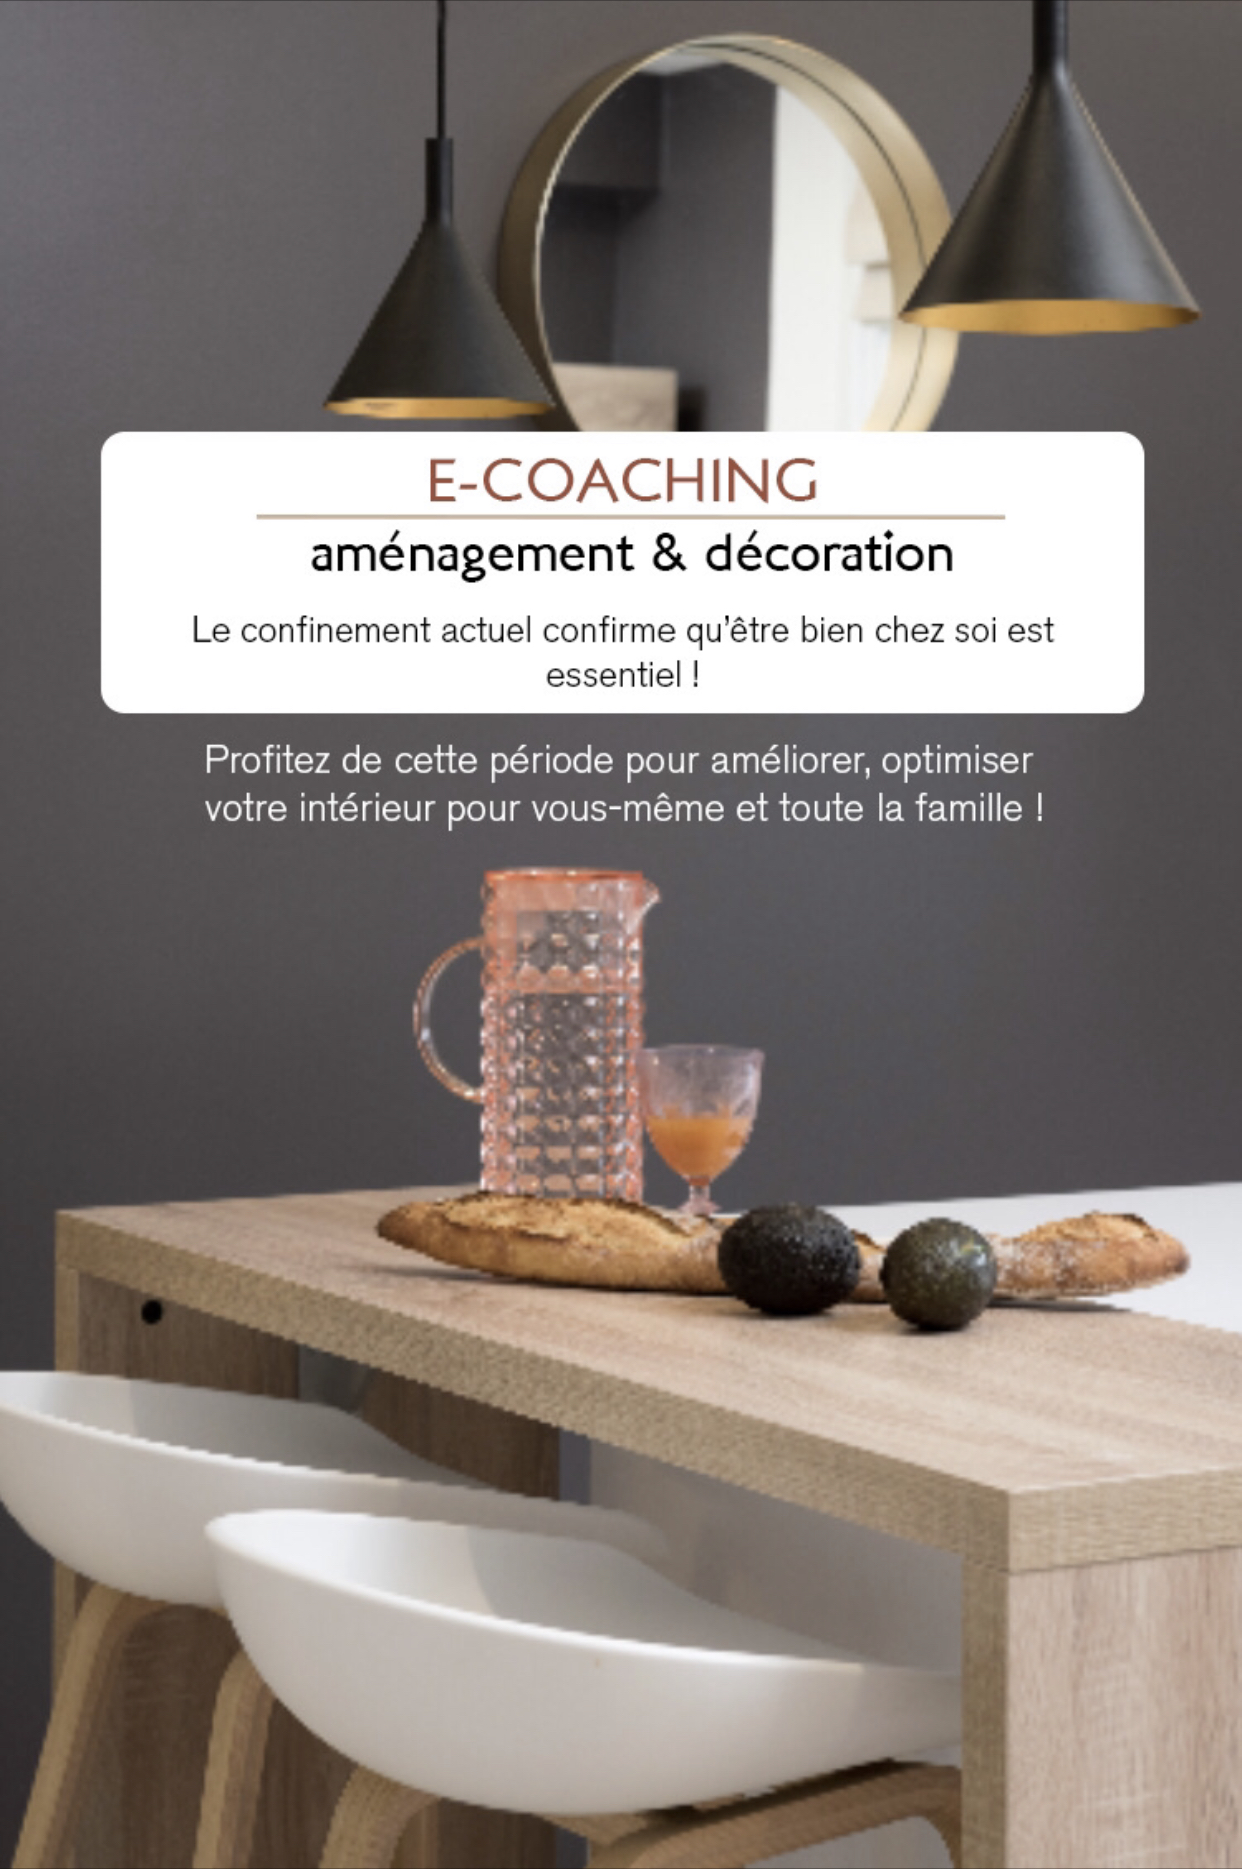 e-coaching-agence-atmospheres-design-conseil-deco-idee-deco-amenagement-renovation-interioir-design-designer-patricia-coignard-audrey-pacaud